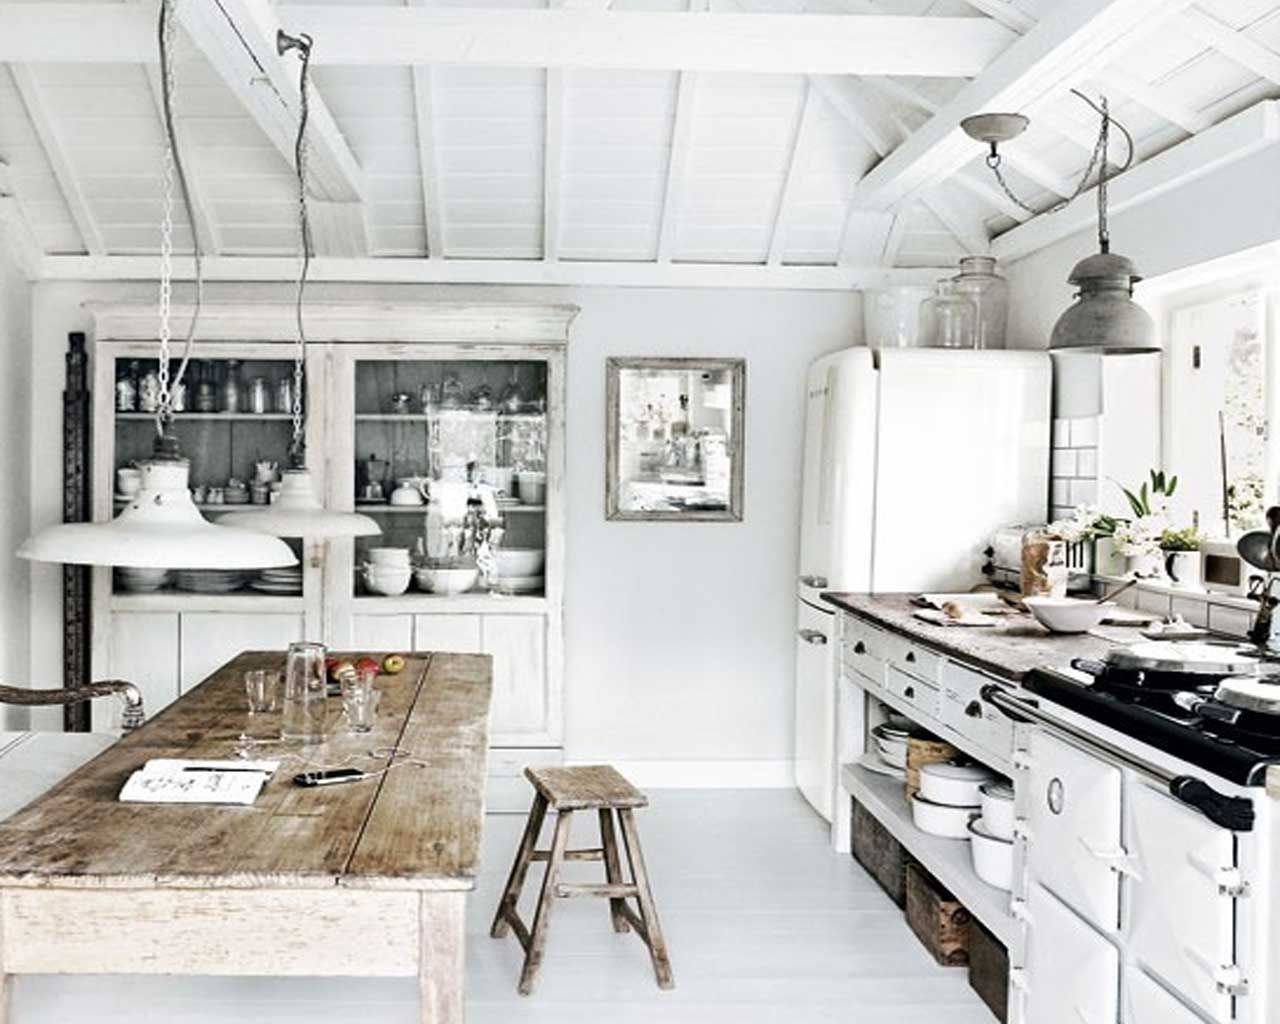 Rustic Beach Interior Design Rustic Cottage Kitchen Interiors Design In White Wall Home